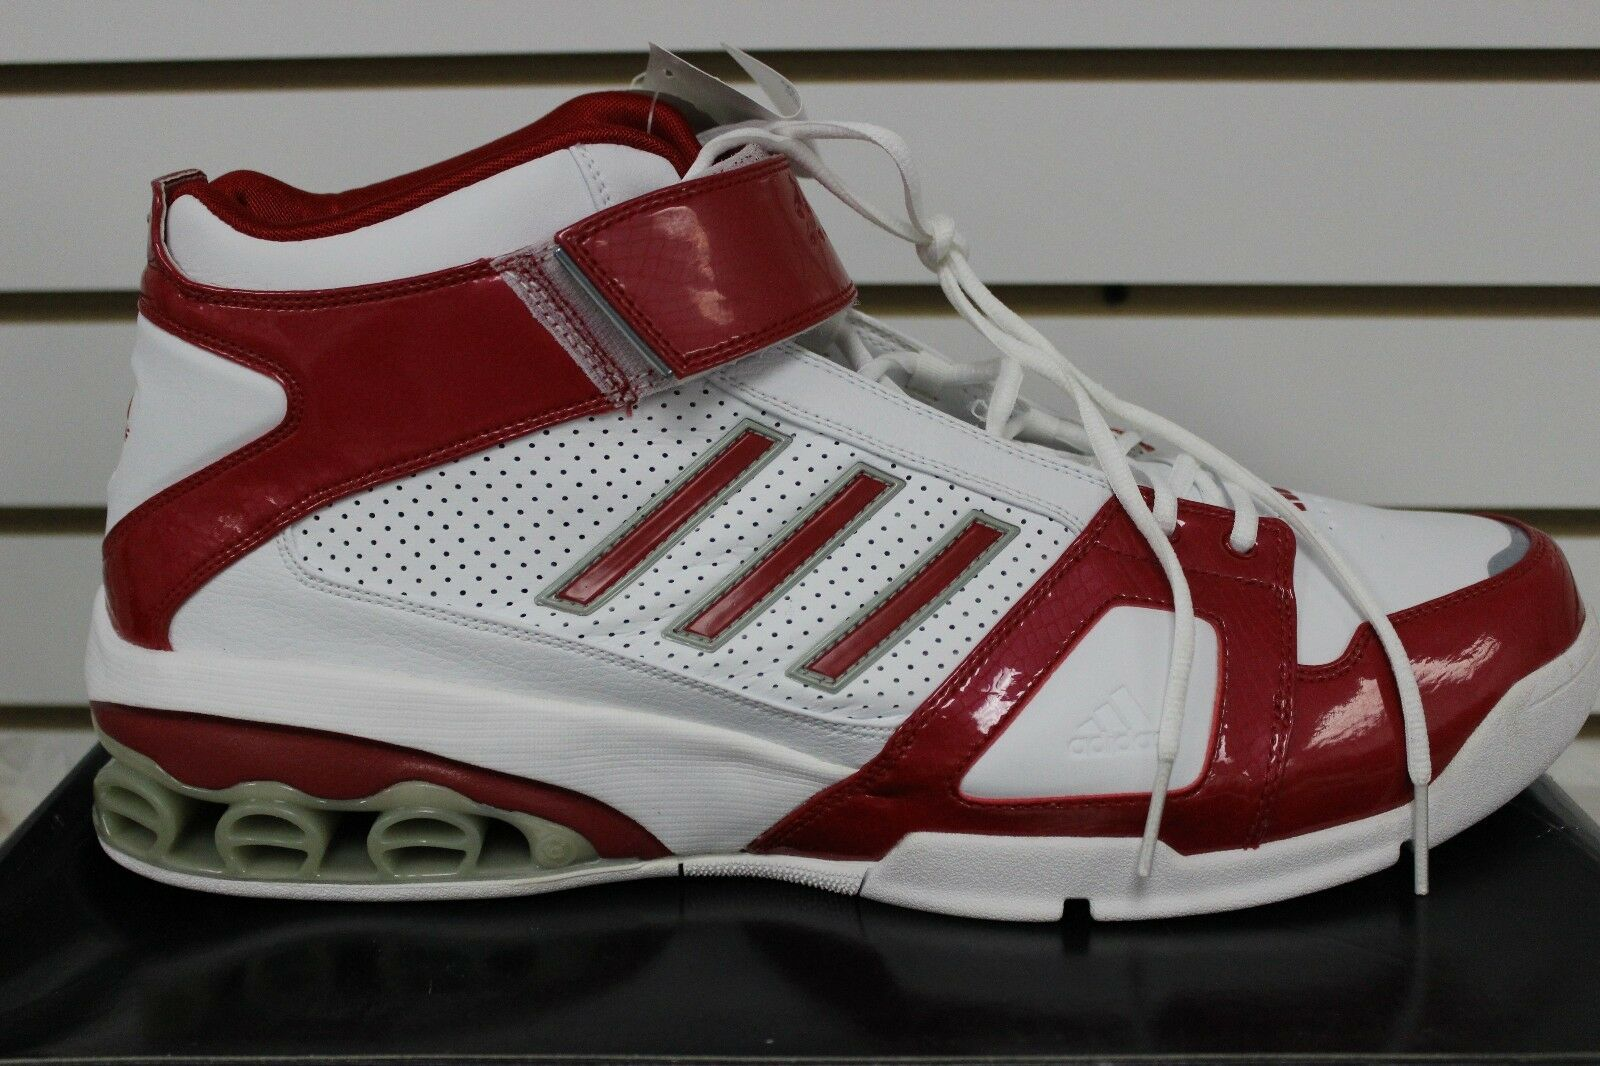 Herren Adidas Ast NCAA J-Smoov Josh Smith Basketball Weiß Rot 667534